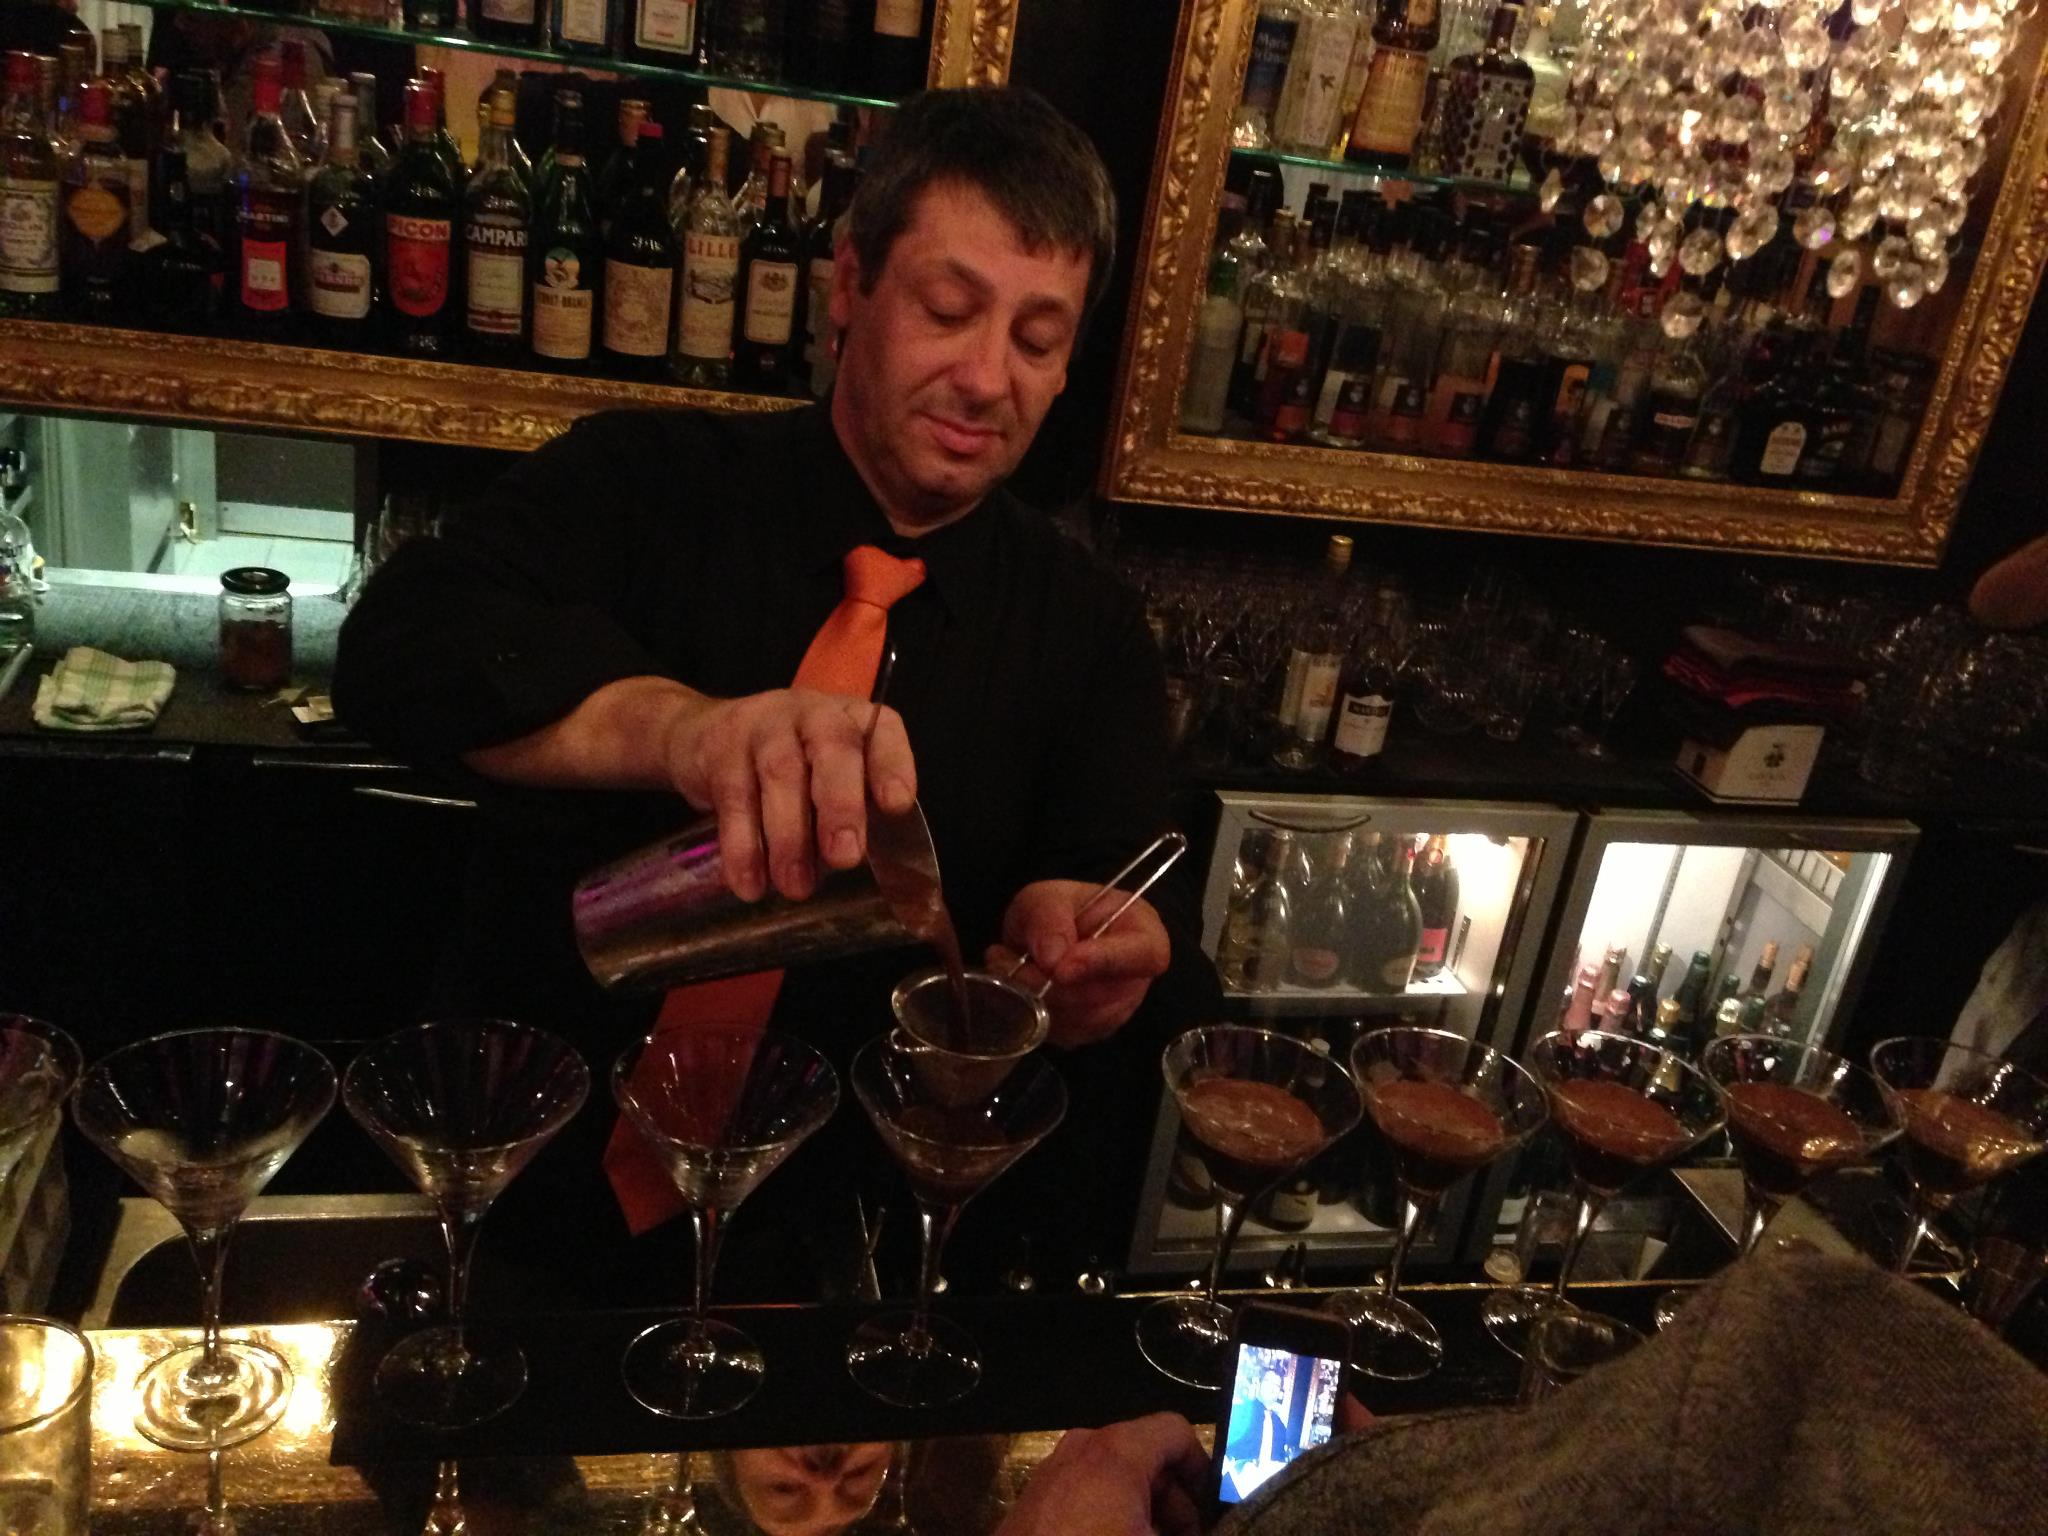 Bartenders at work by Infosbar : le CV express de Jean-Louis Hugonnet